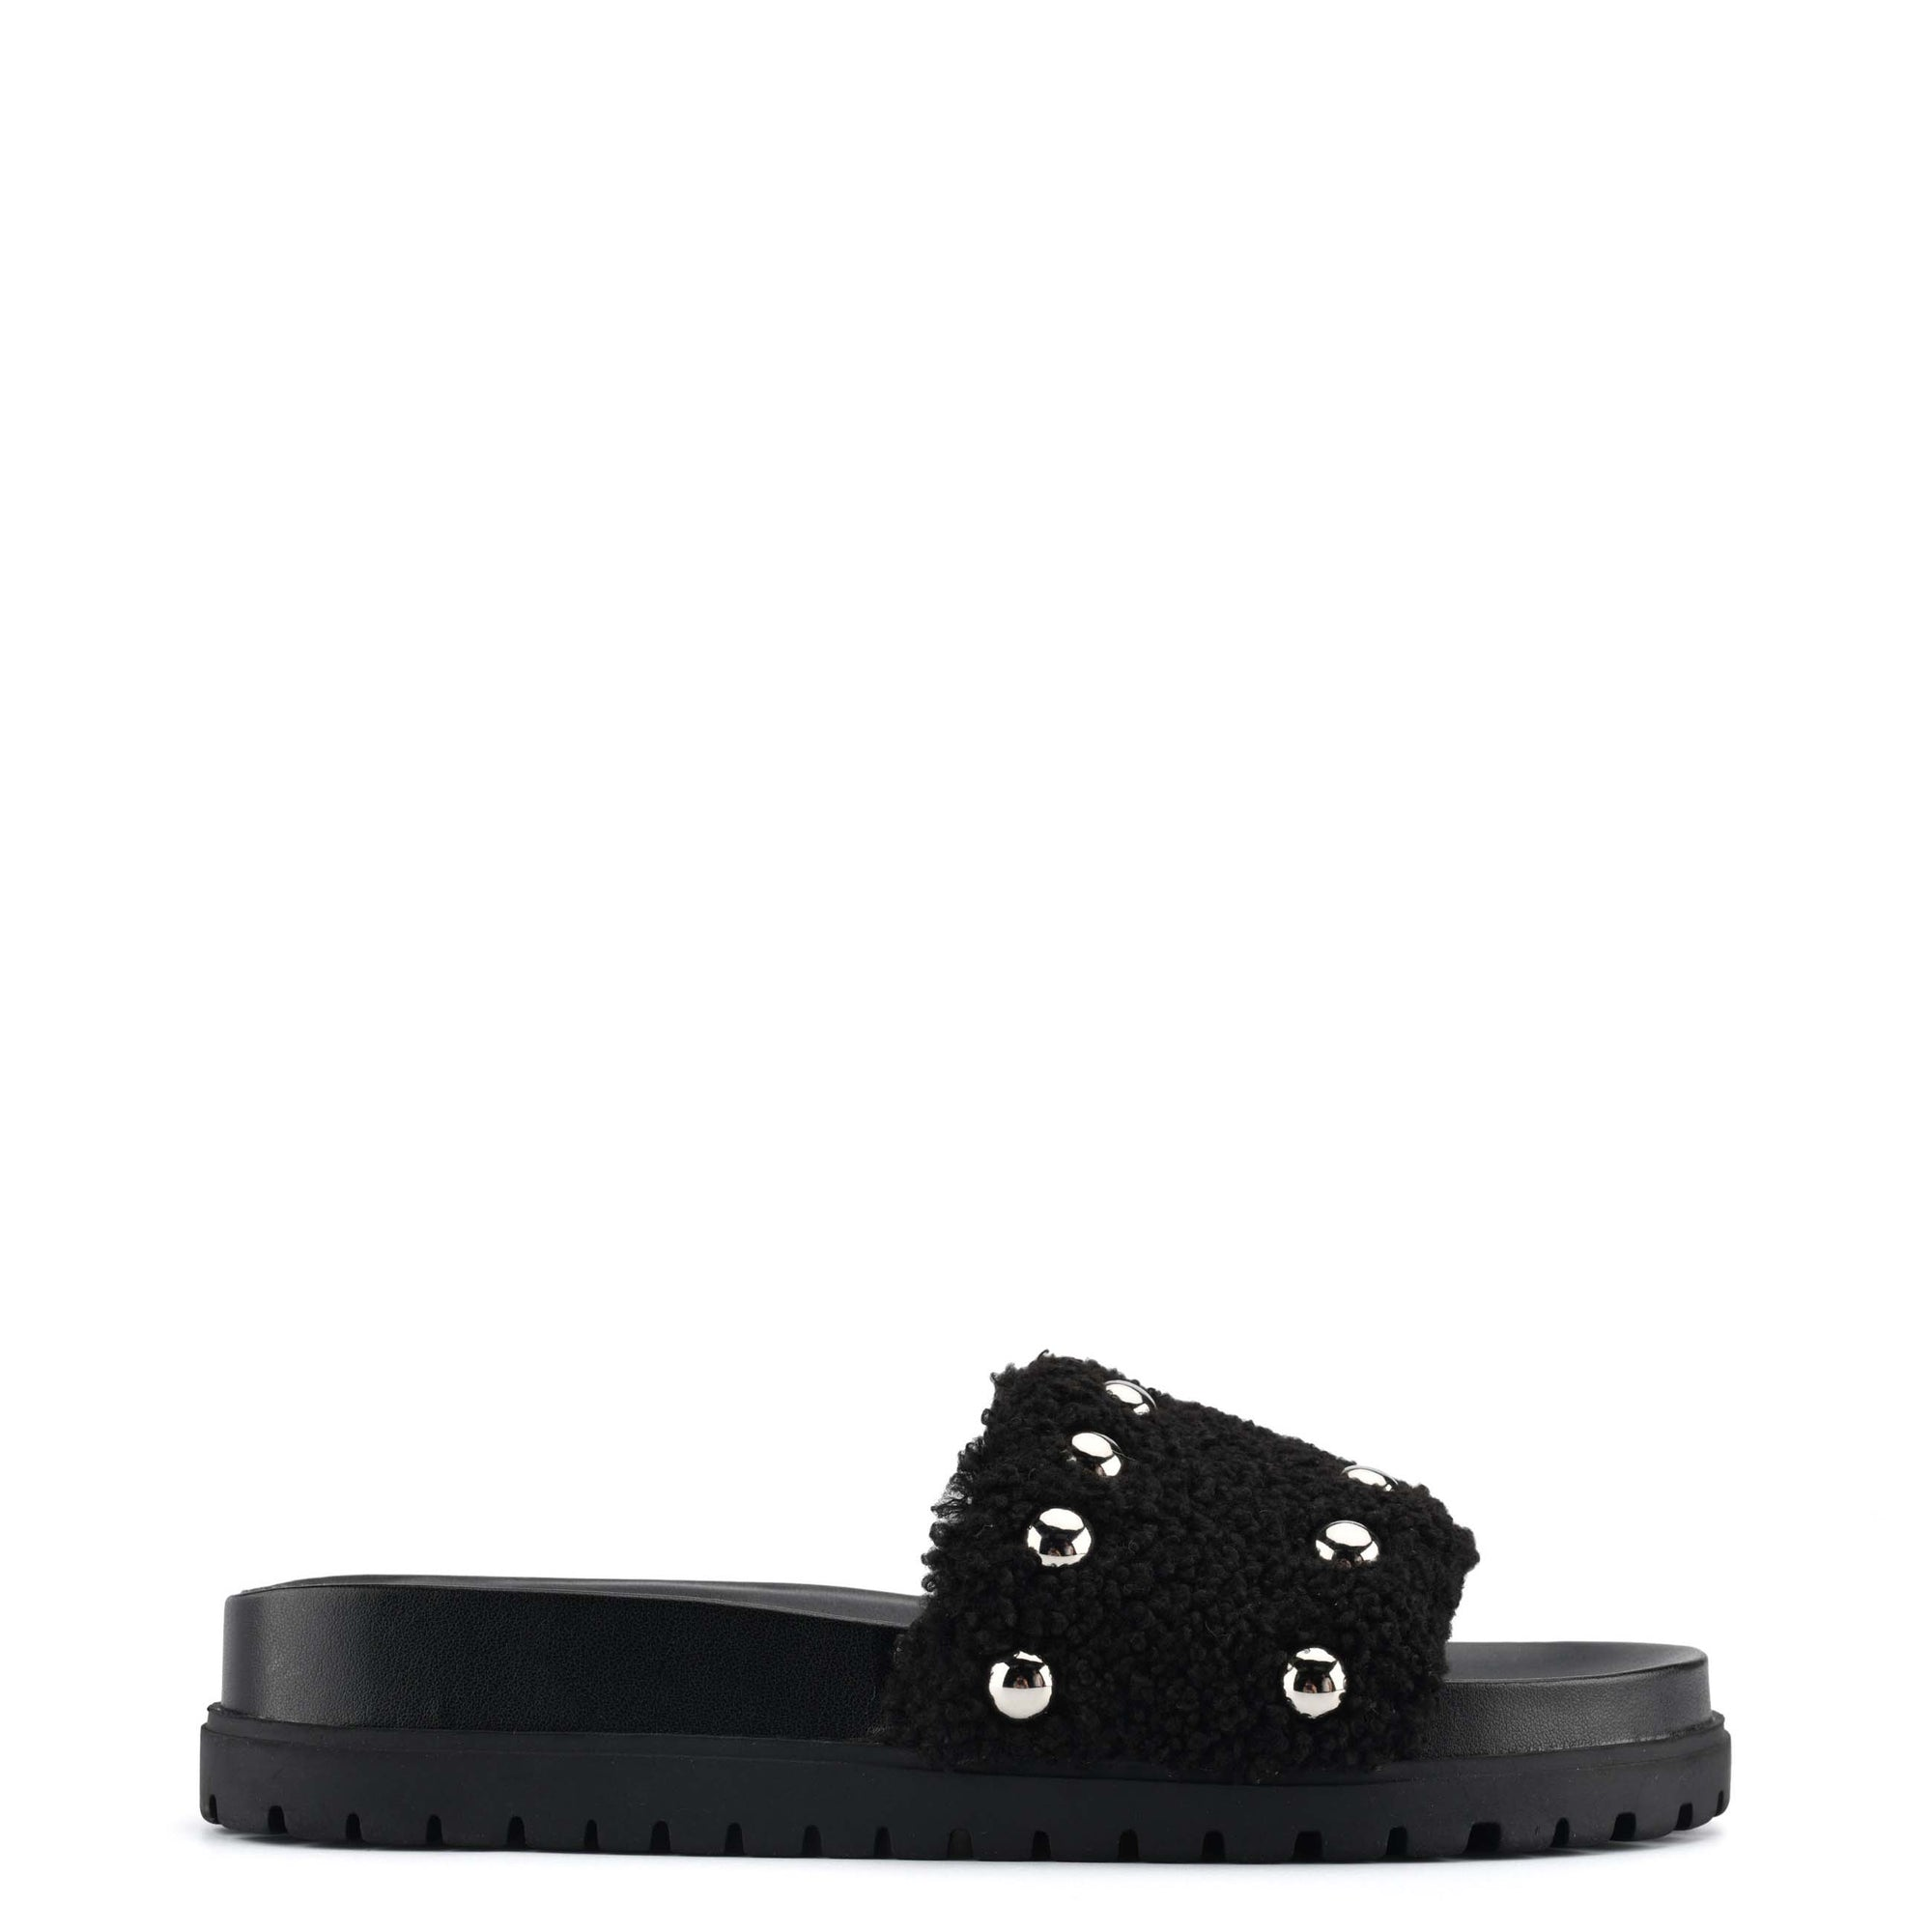 Freely Studded Flat Slide Sandals